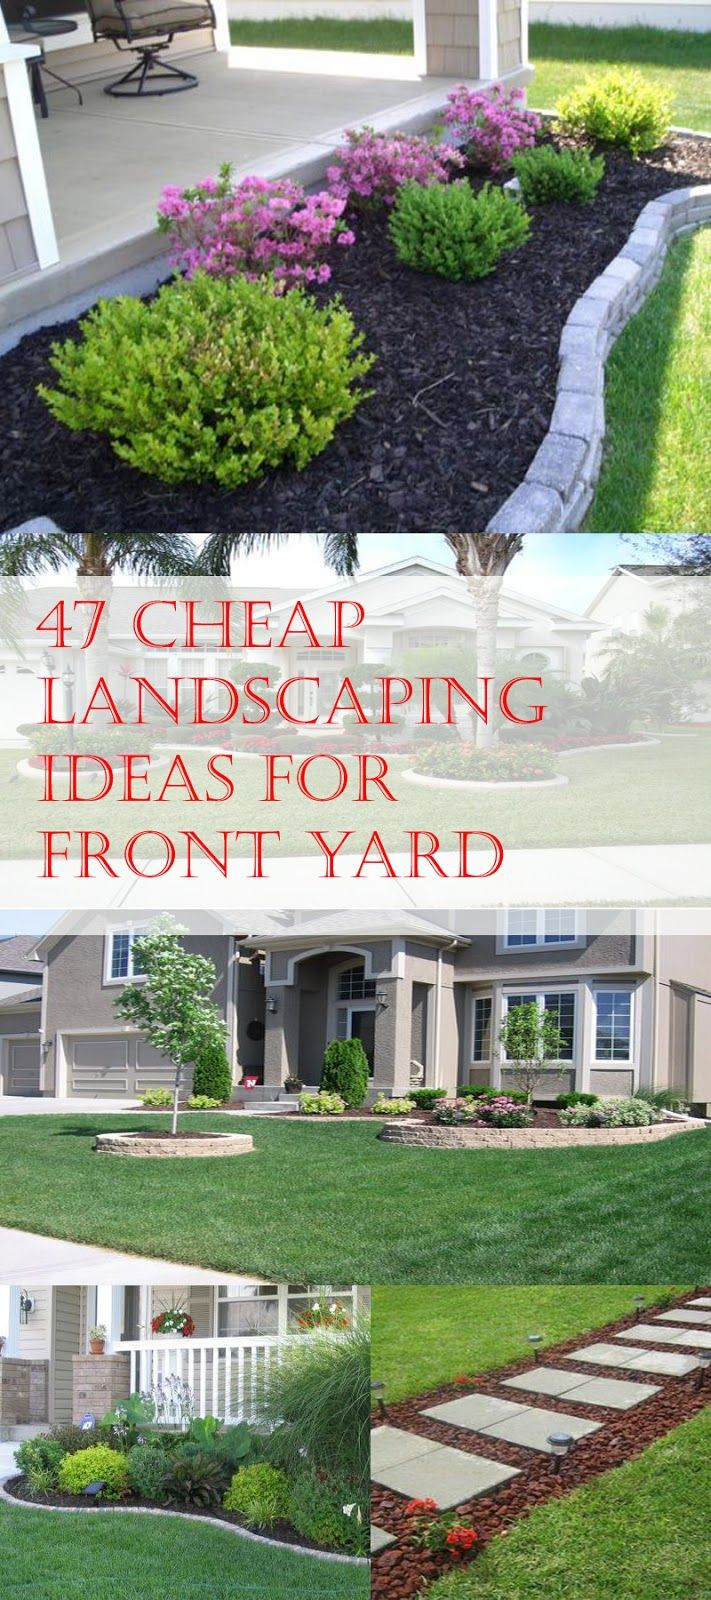 47 Cheap Landscaping Ideas For Front Yard. 25  beautiful Cheap landscaping ideas ideas on Pinterest